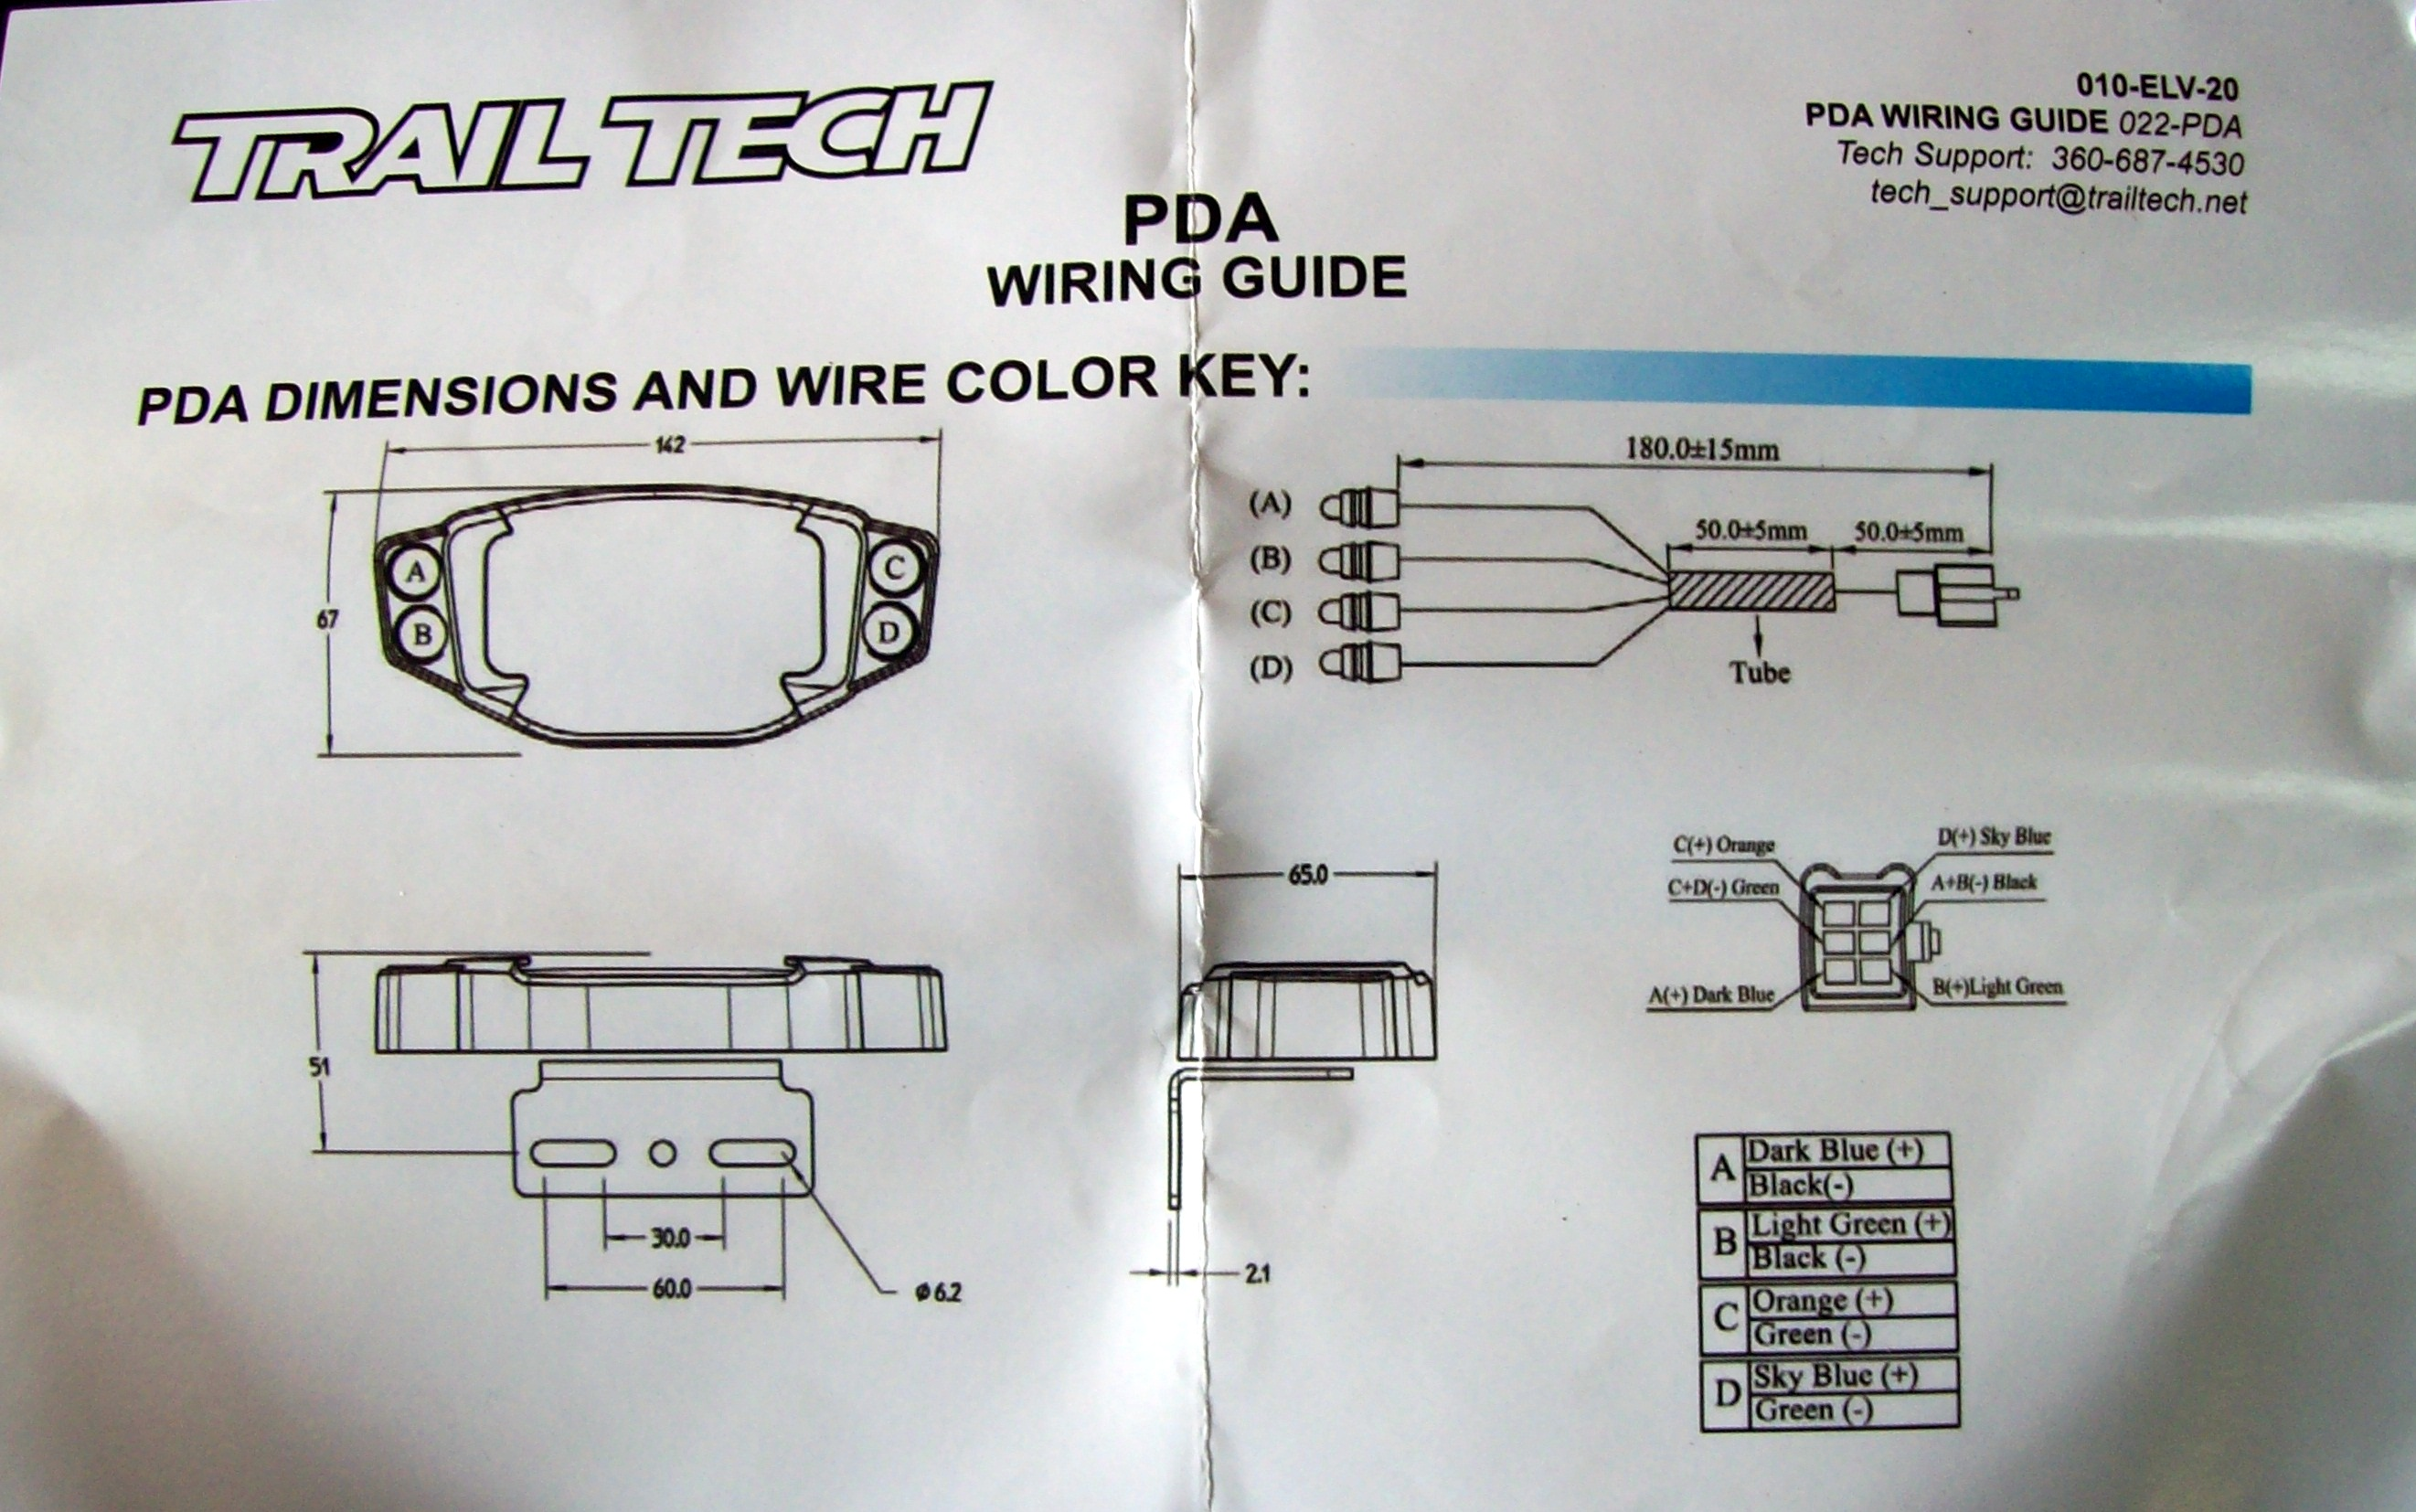 37656d1398366723 wip trail tech vapor install guide 201_5421 wip] trail tech vapor install guide page 3 trail tech vapor wiring diagram at pacquiaovsvargaslive.co